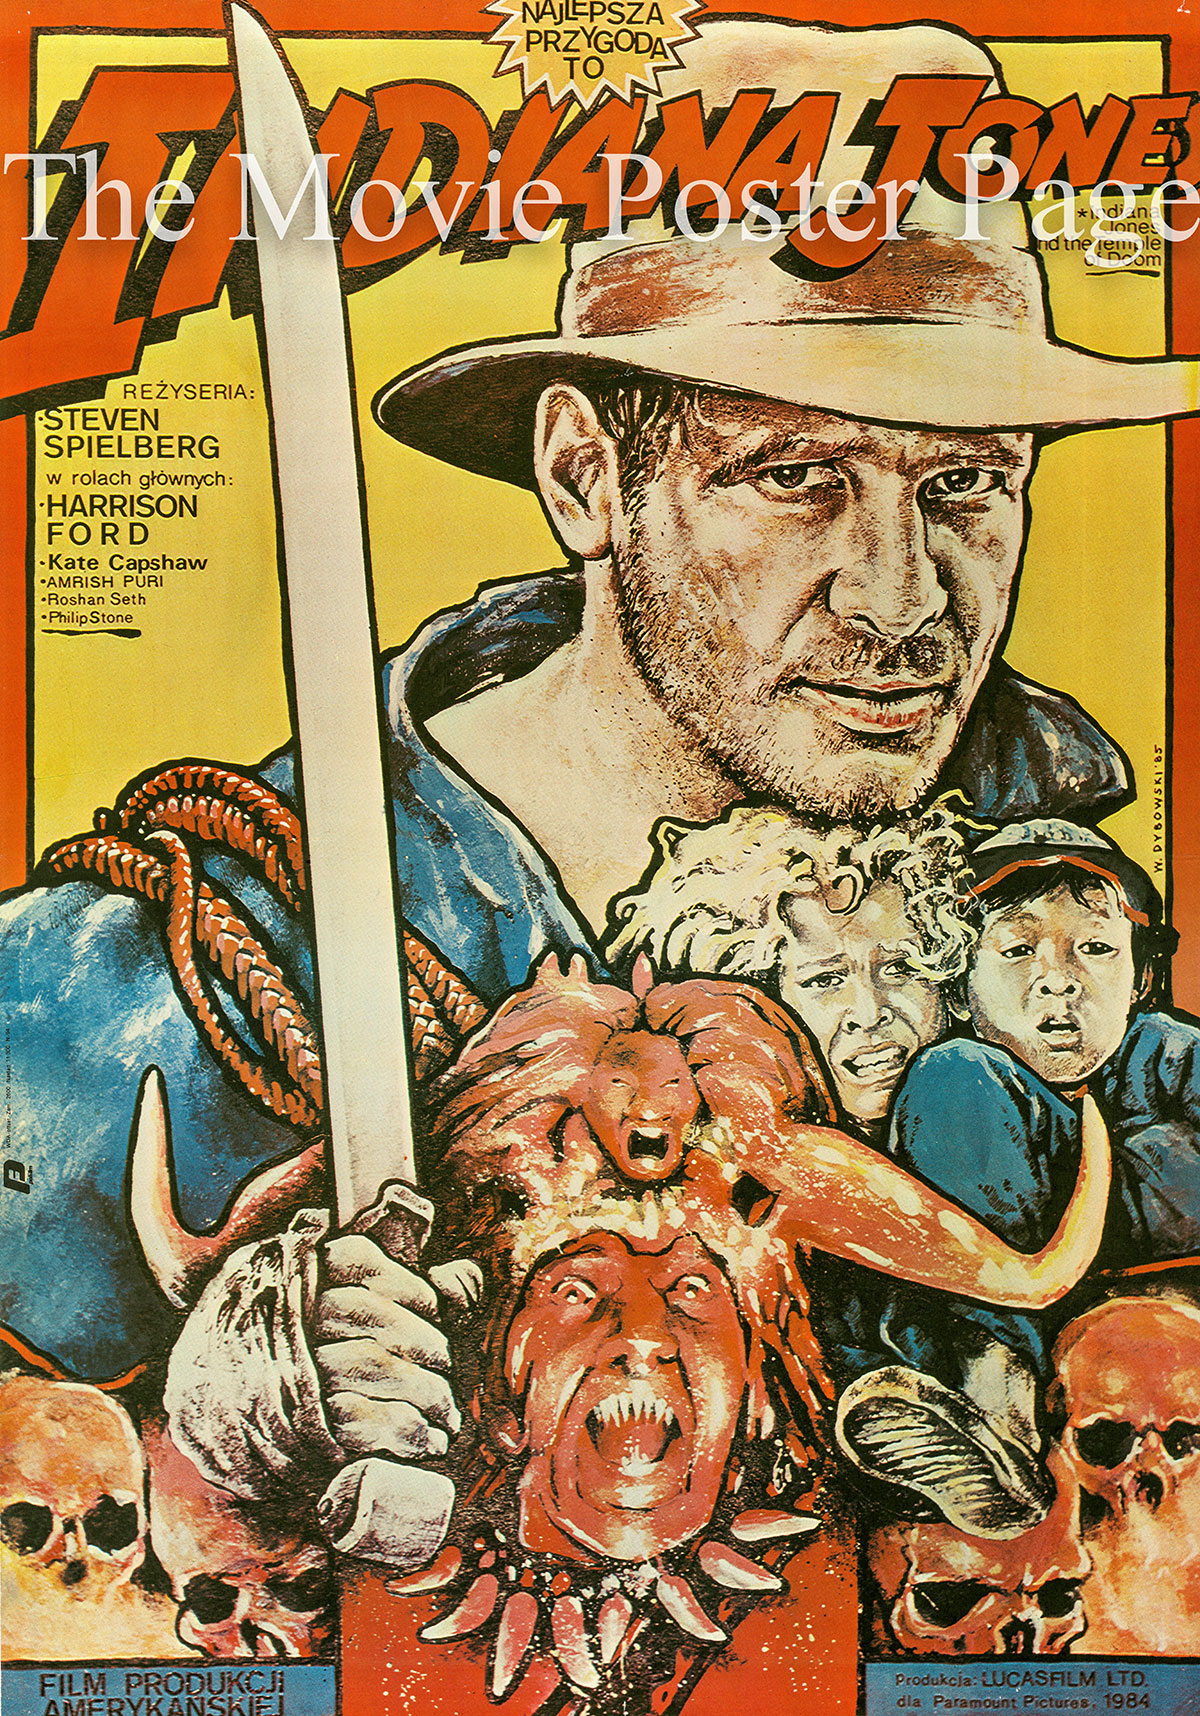 Pictured is an Polish promotional poster for a 1985 Polish rerelease of the 1984 Steven Spielberg film Indiana Jones and the Temple of Doom starring Harrison Ford.